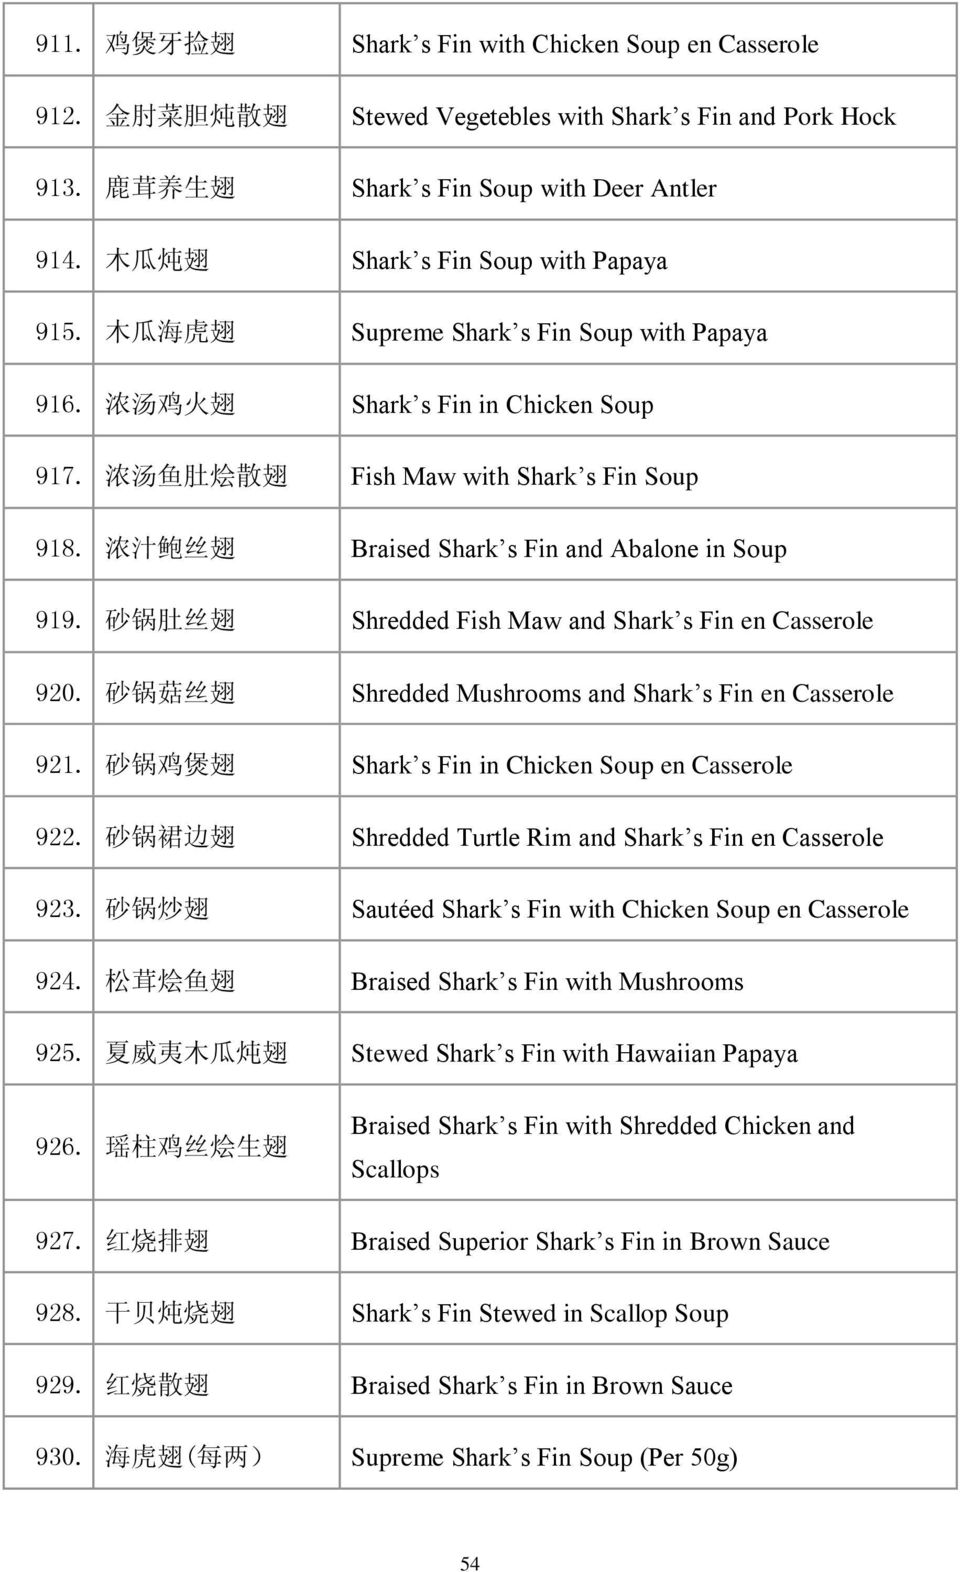 浓 汁 鲍 丝 翅 Braised Shark s Fin and Abalone in Soup 919. 砂 锅 肚 丝 翅 Shredded Fish Maw and Shark s Fin en Casserole 920. 砂 锅 菇 丝 翅 Shredded Mushrooms and Shark s Fin en Casserole 921.